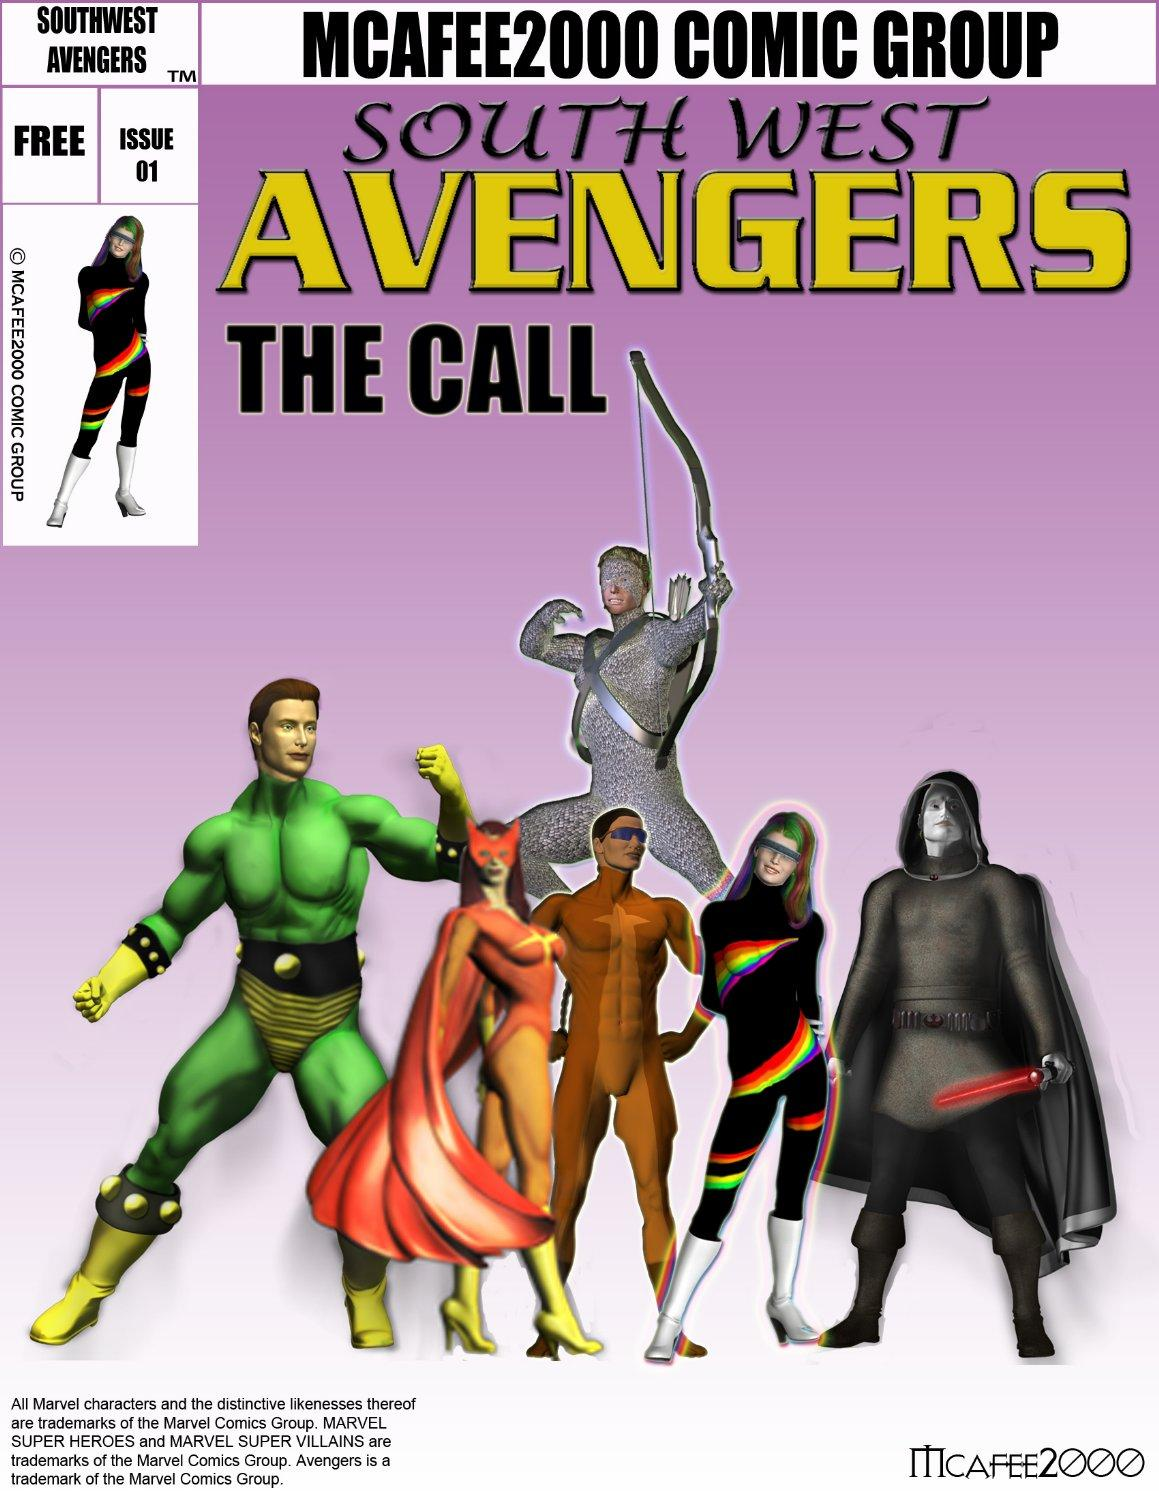 South West Avengers - Group